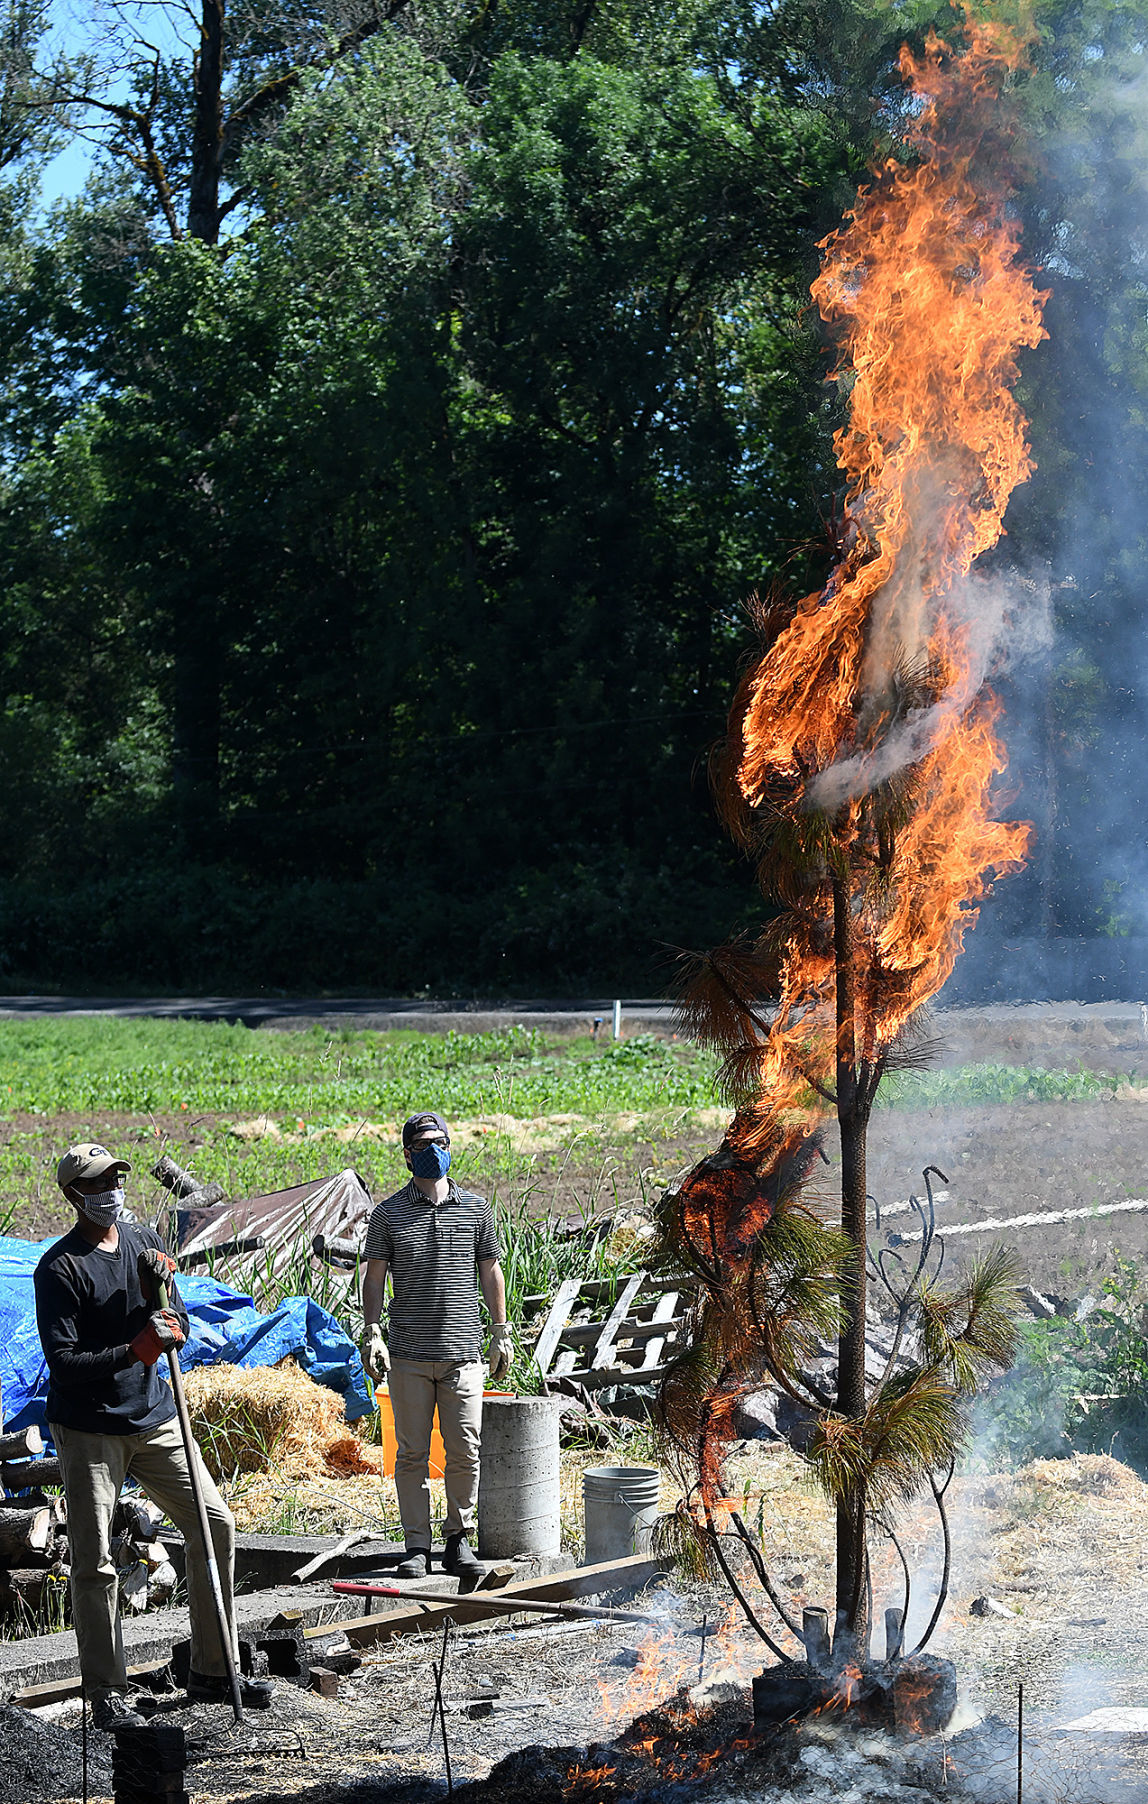 062120-adh-nws-Torching Trees1-my